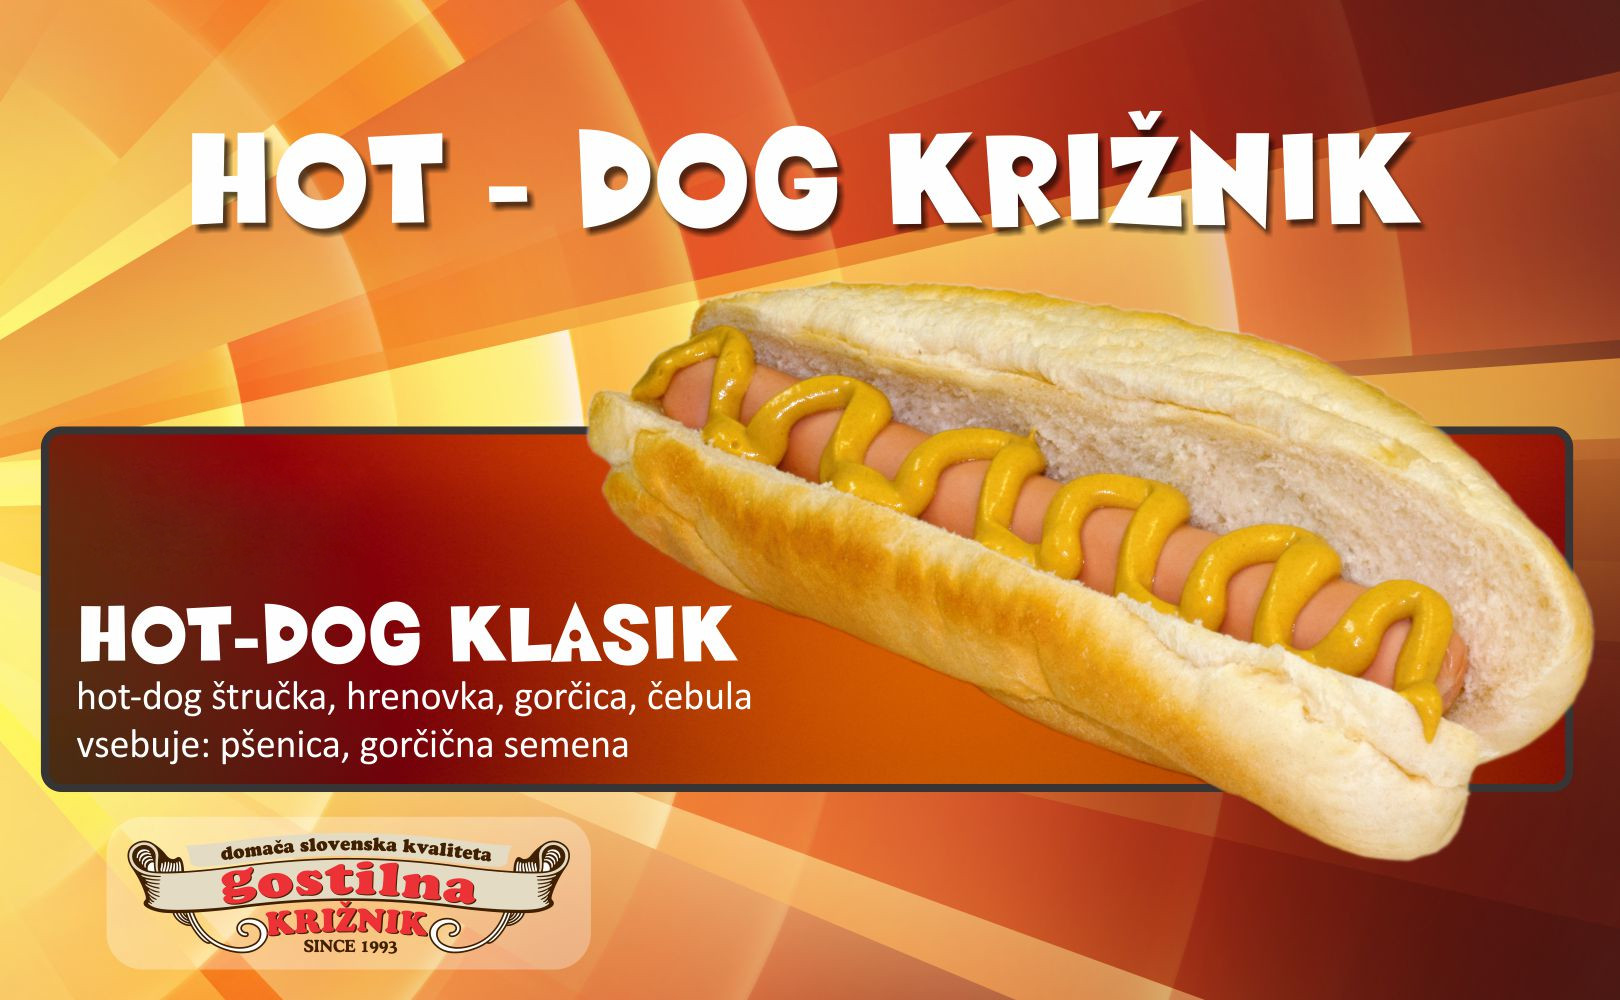 Klasik hot-dog